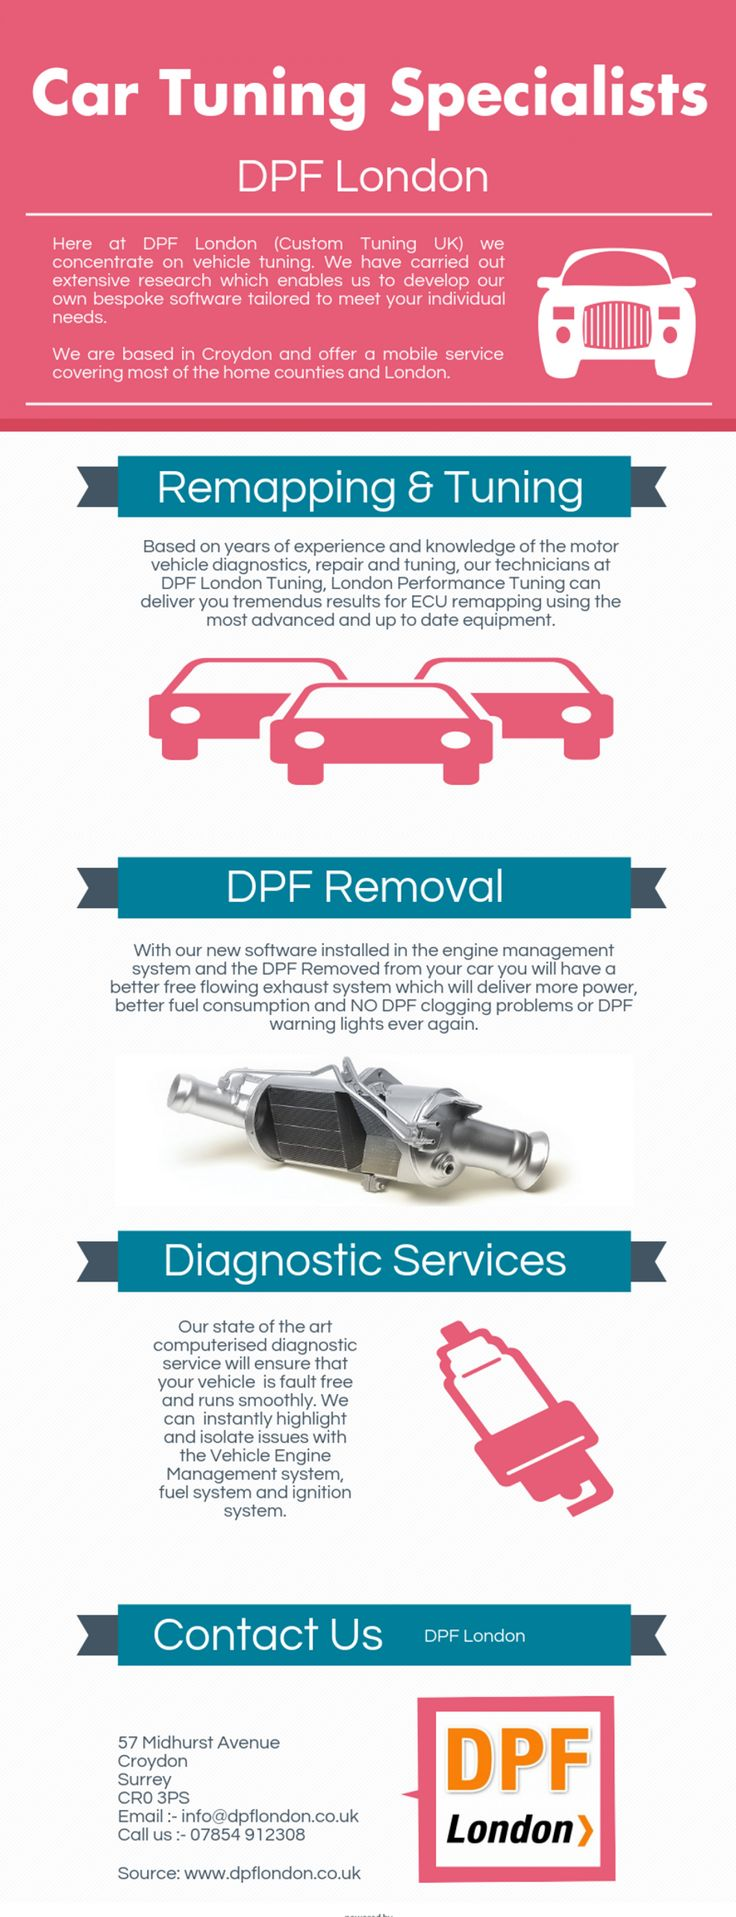 Performance Remapping Croydon :- #CarRemappingLondon #CarTuningLondon #PerformanceRemappingLondon #PerformanceRemappingCroydon #DpfCroydon #DpfLondon !!!! http://dpflondon.co.uk/diagnostics/remapping-and-performance-upgrades/performance-tuning-service - Google Search